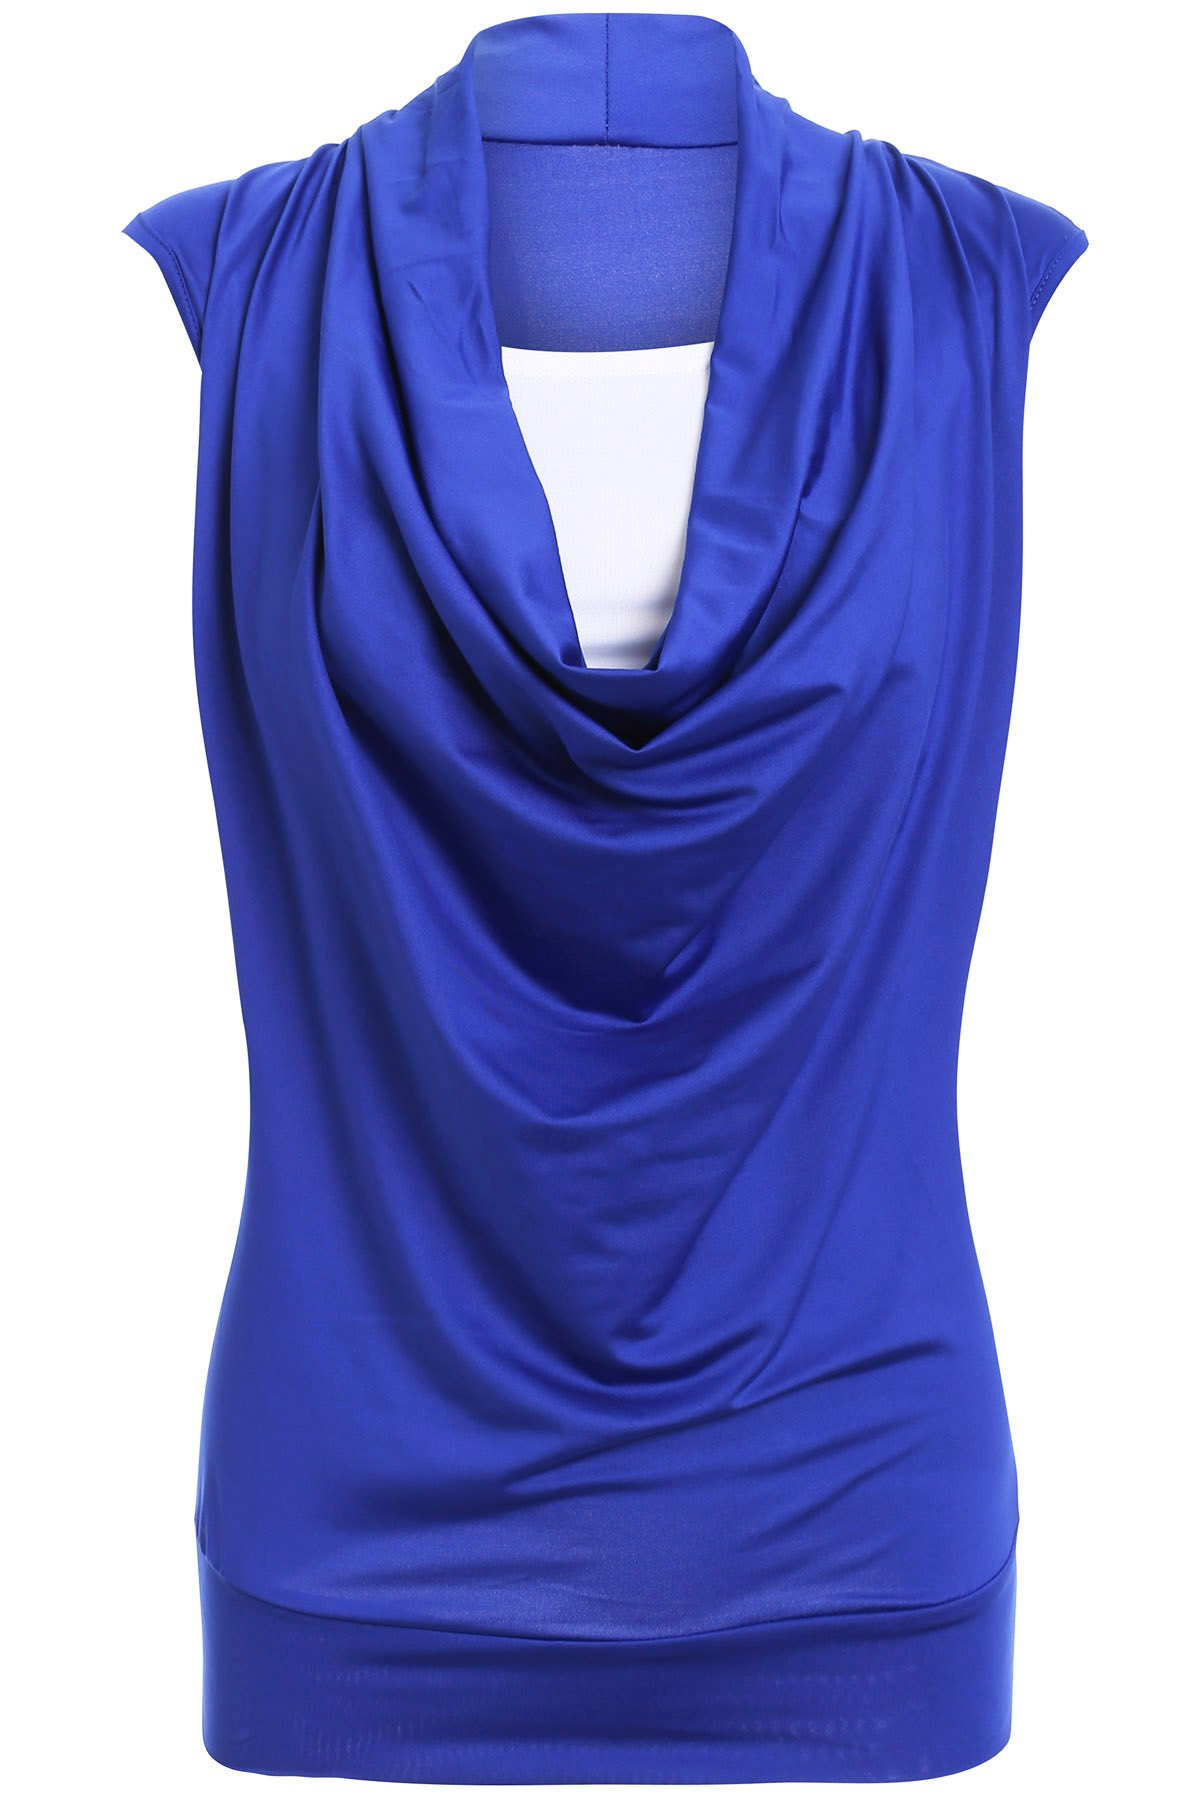 Stylish Women's Short Sleeve Ruffled Spliced Design T-Shirt - BLUE L